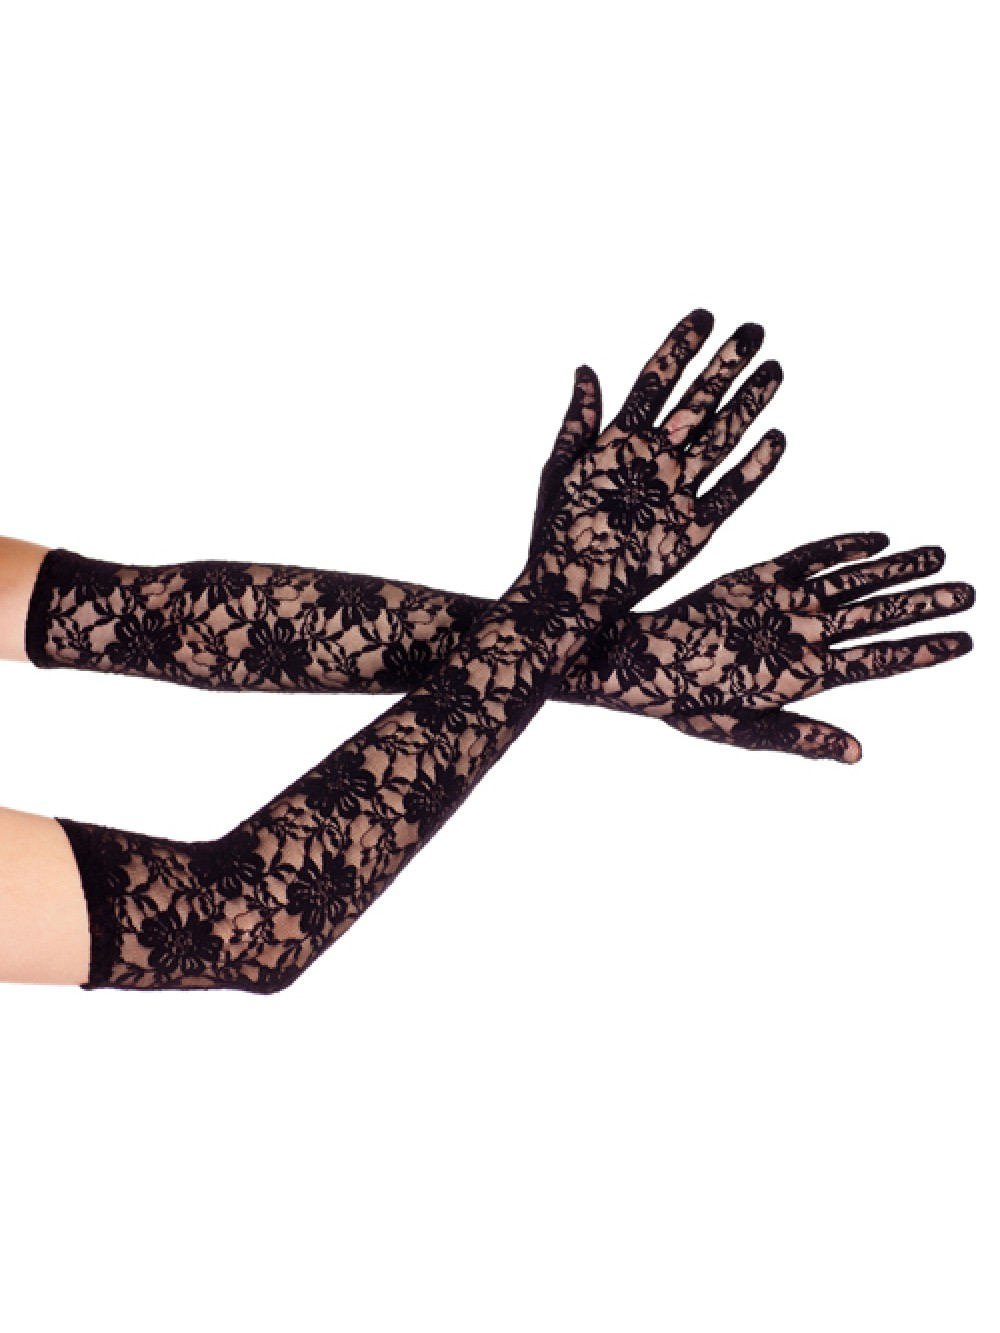 Extra long lace gloves BLACK 849450047599